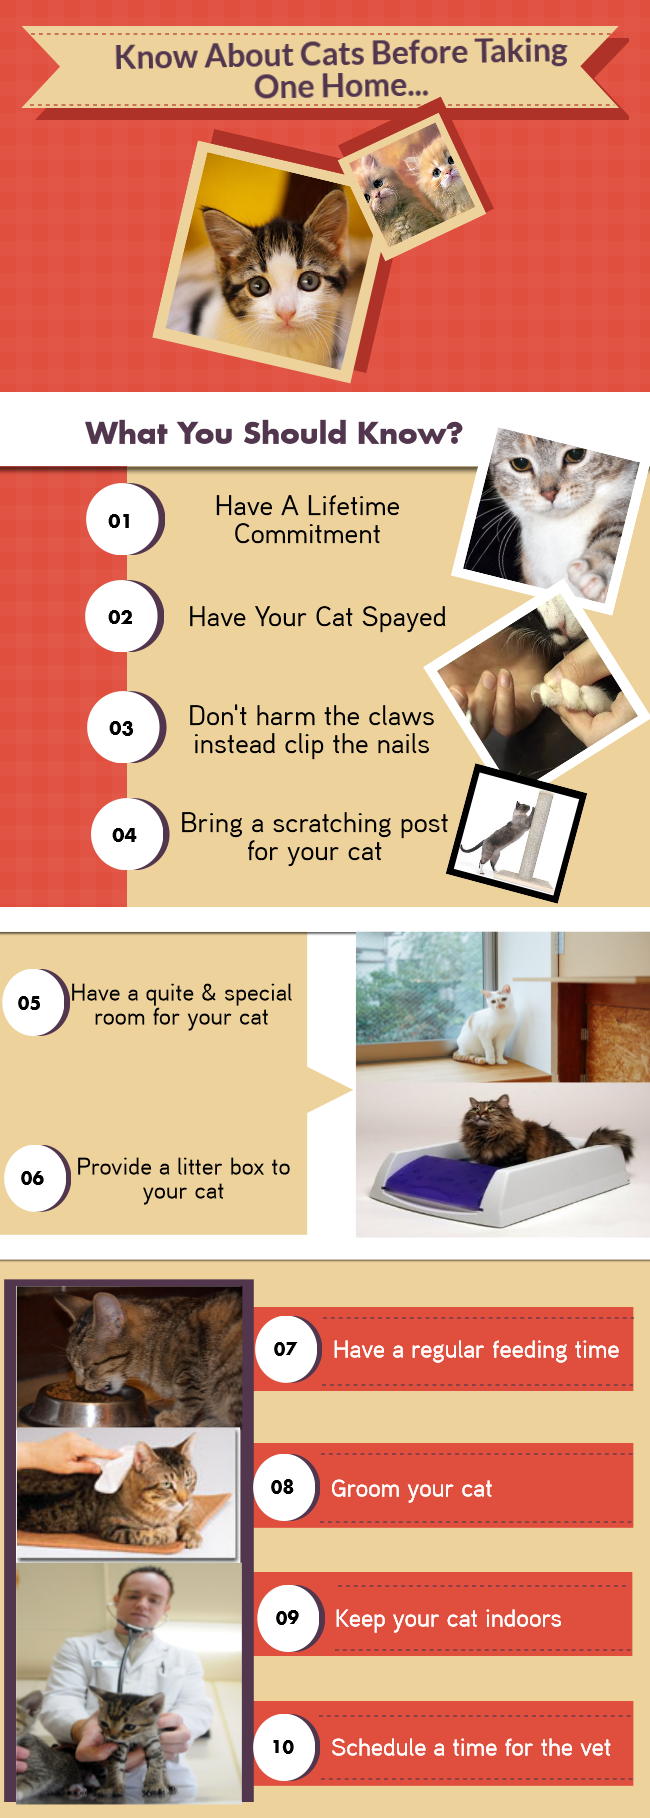 Things To Know About Cats